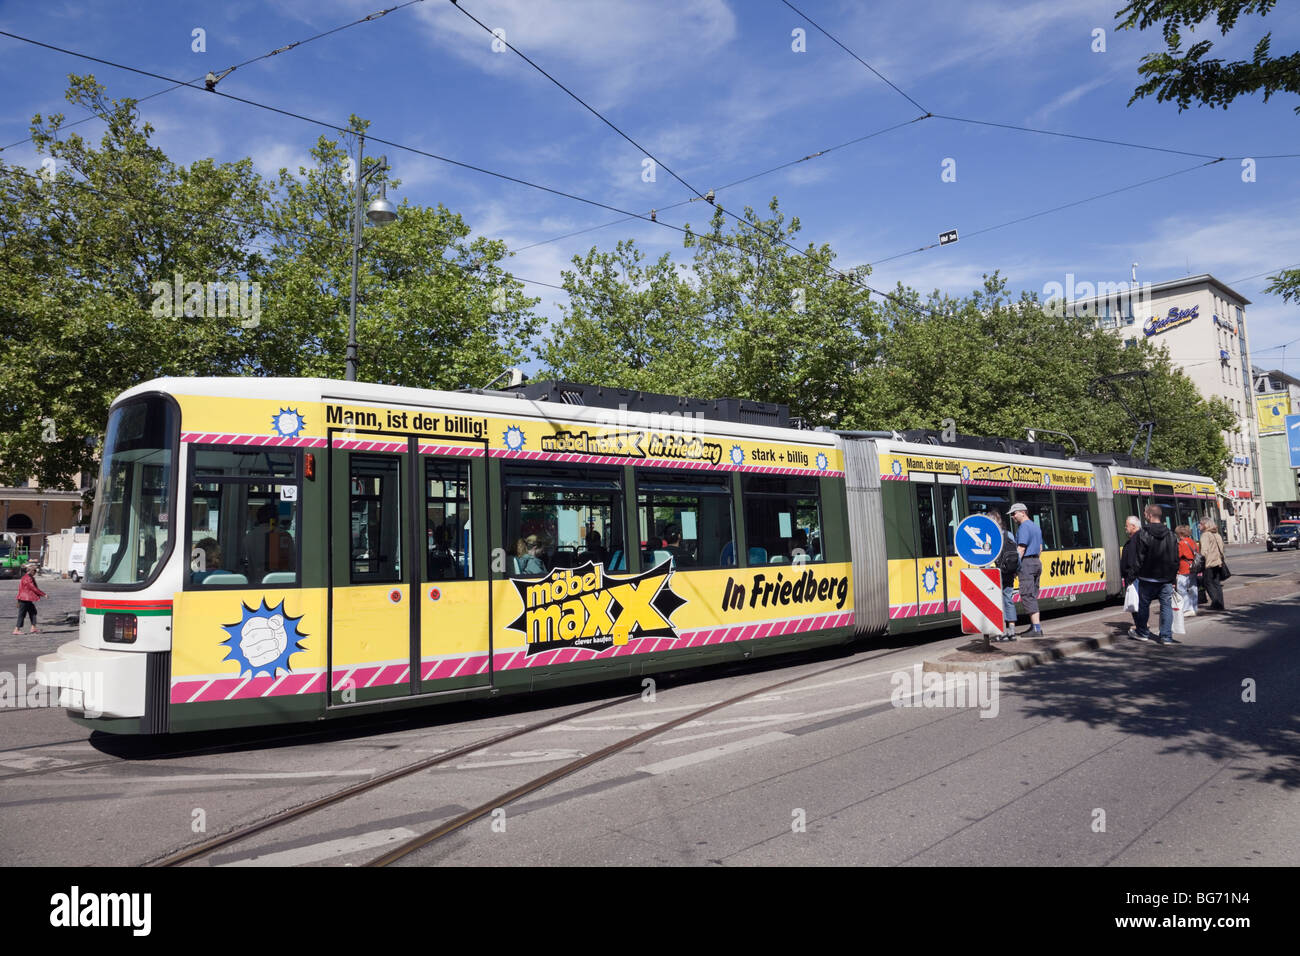 Augsburg, Bavaria, Germany, Europe. City Tram on tramway network in efficient public transport system - Stock Image